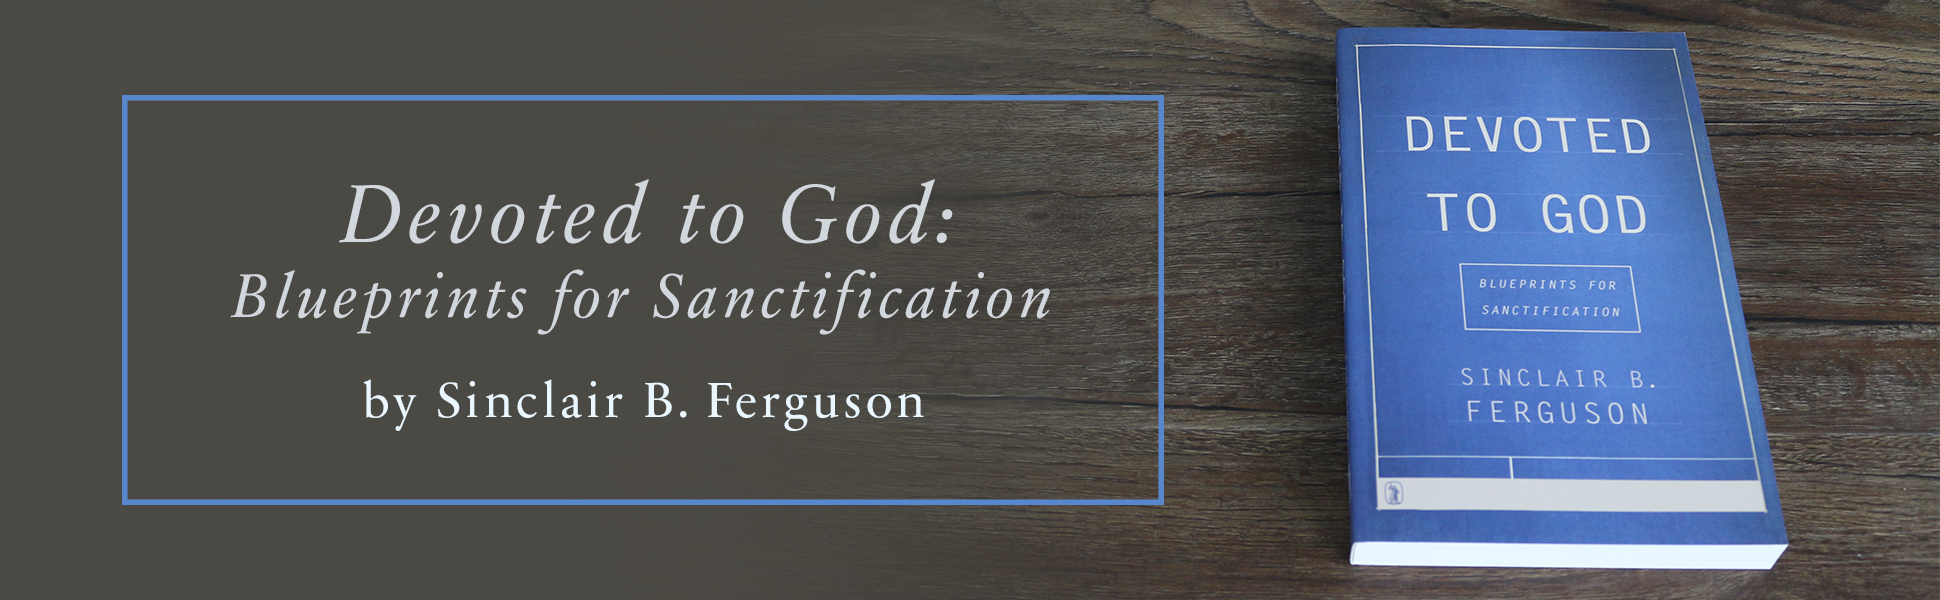 Devoted to god blueprints for sanctification sinclair b ferguson from the publisher malvernweather Gallery